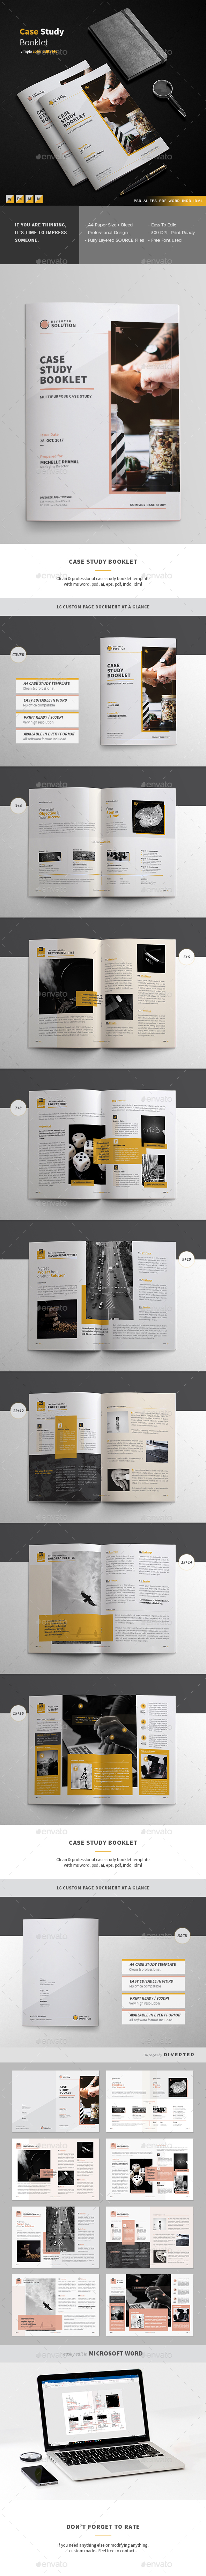 GraphicRiver Case Study Booklet 21101297